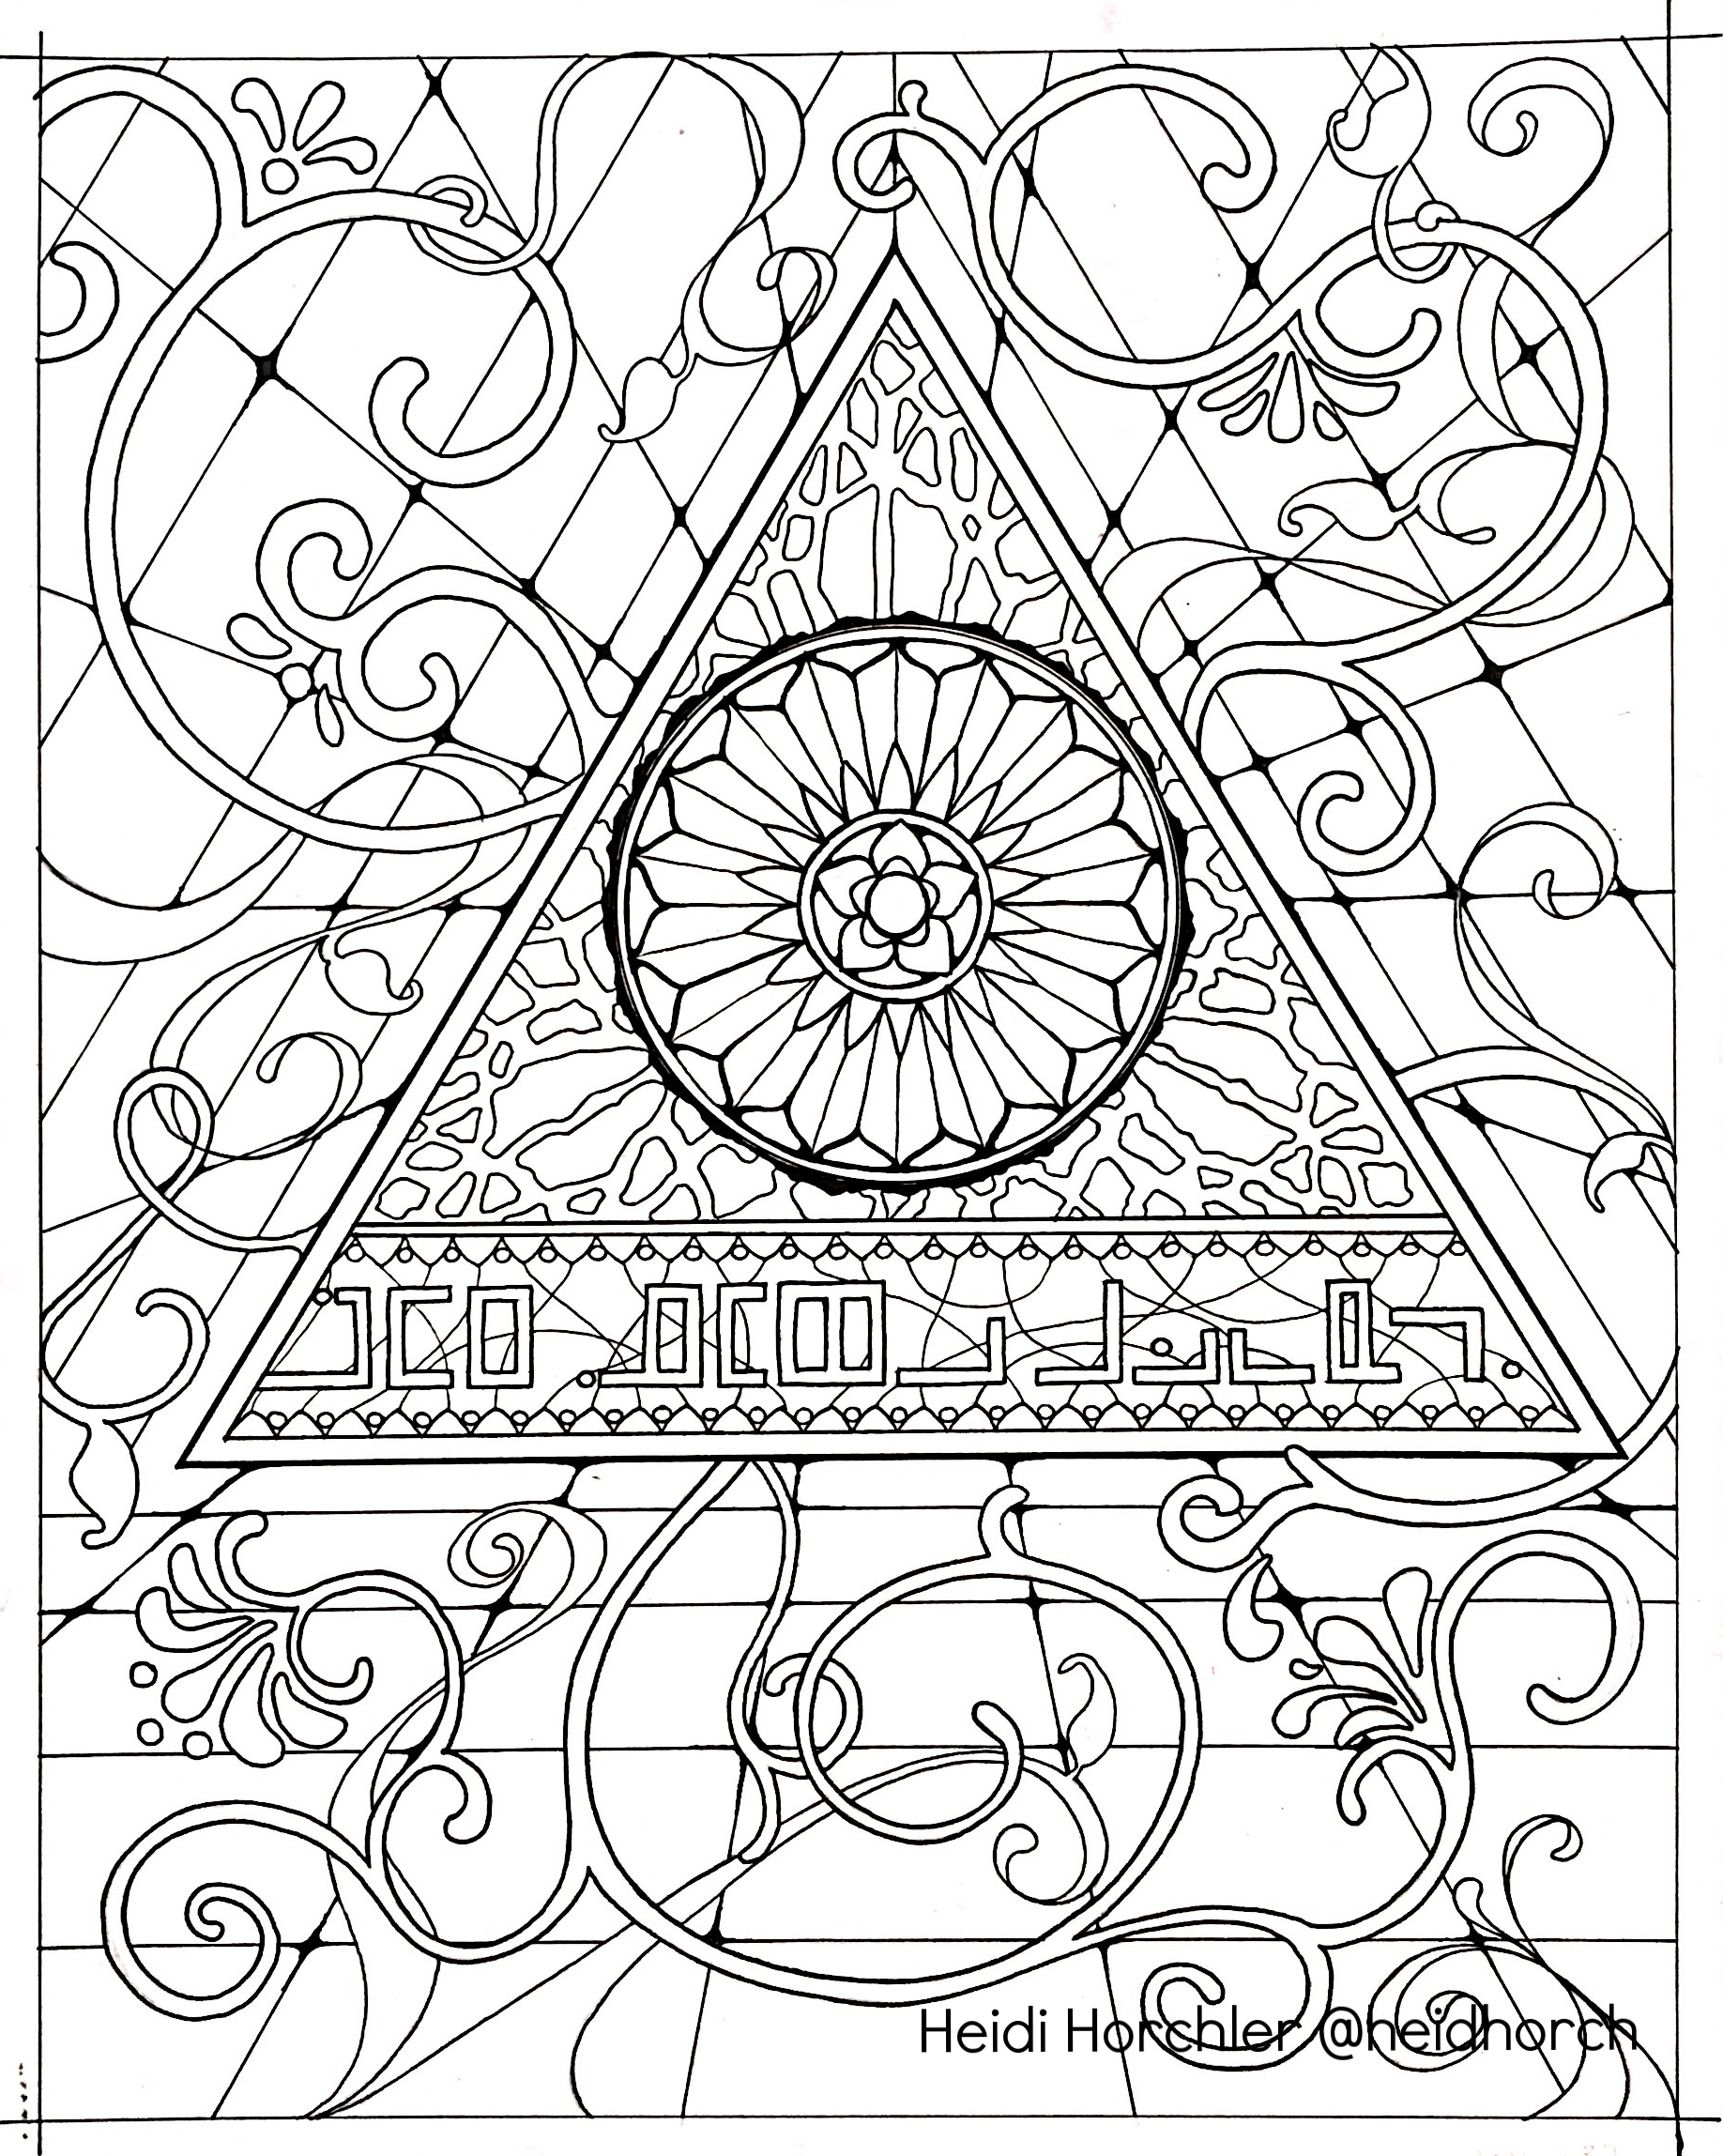 Inscription - Daydream Odyssey coloring page